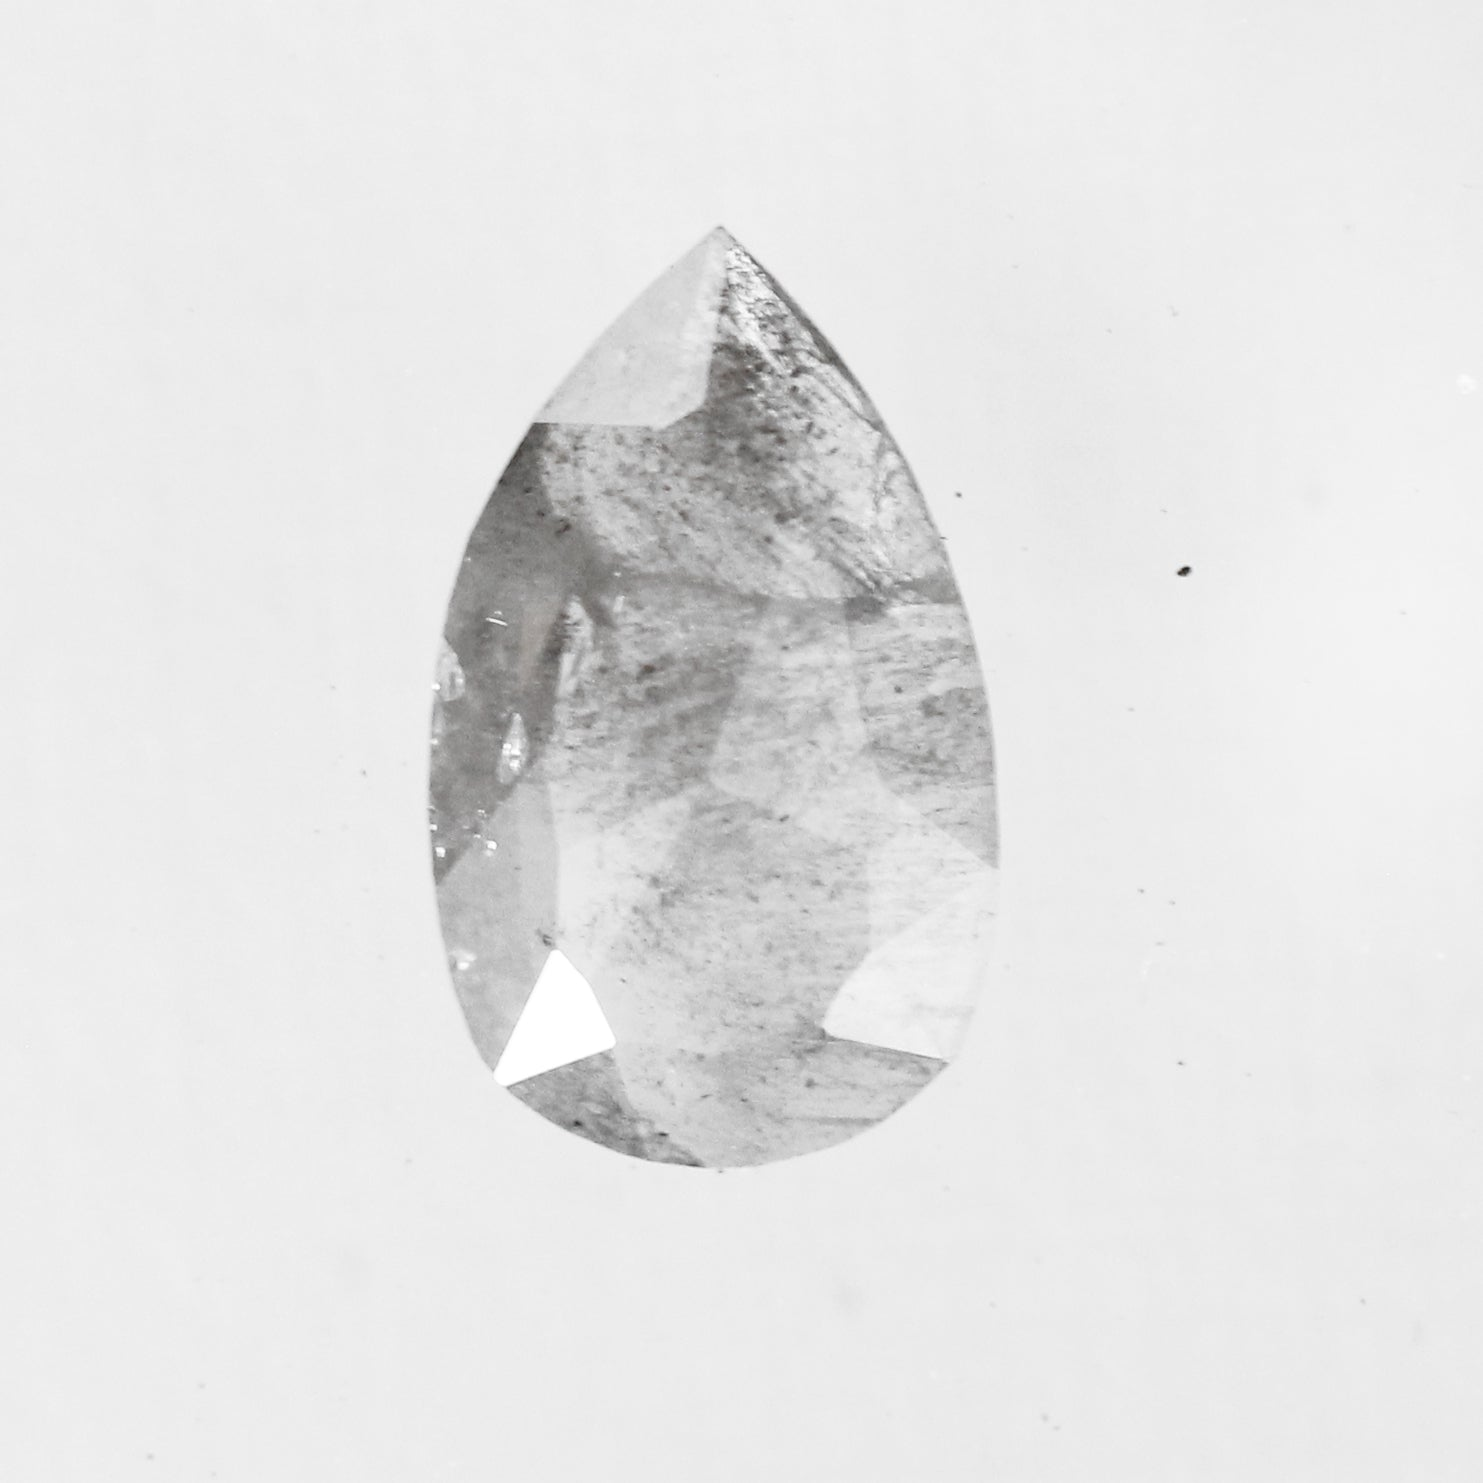 1.23 Carat Pear Celestial Diamond® for Custom Work - Inventory Code PRG123 - Celestial Diamonds ® by Midwinter Co.